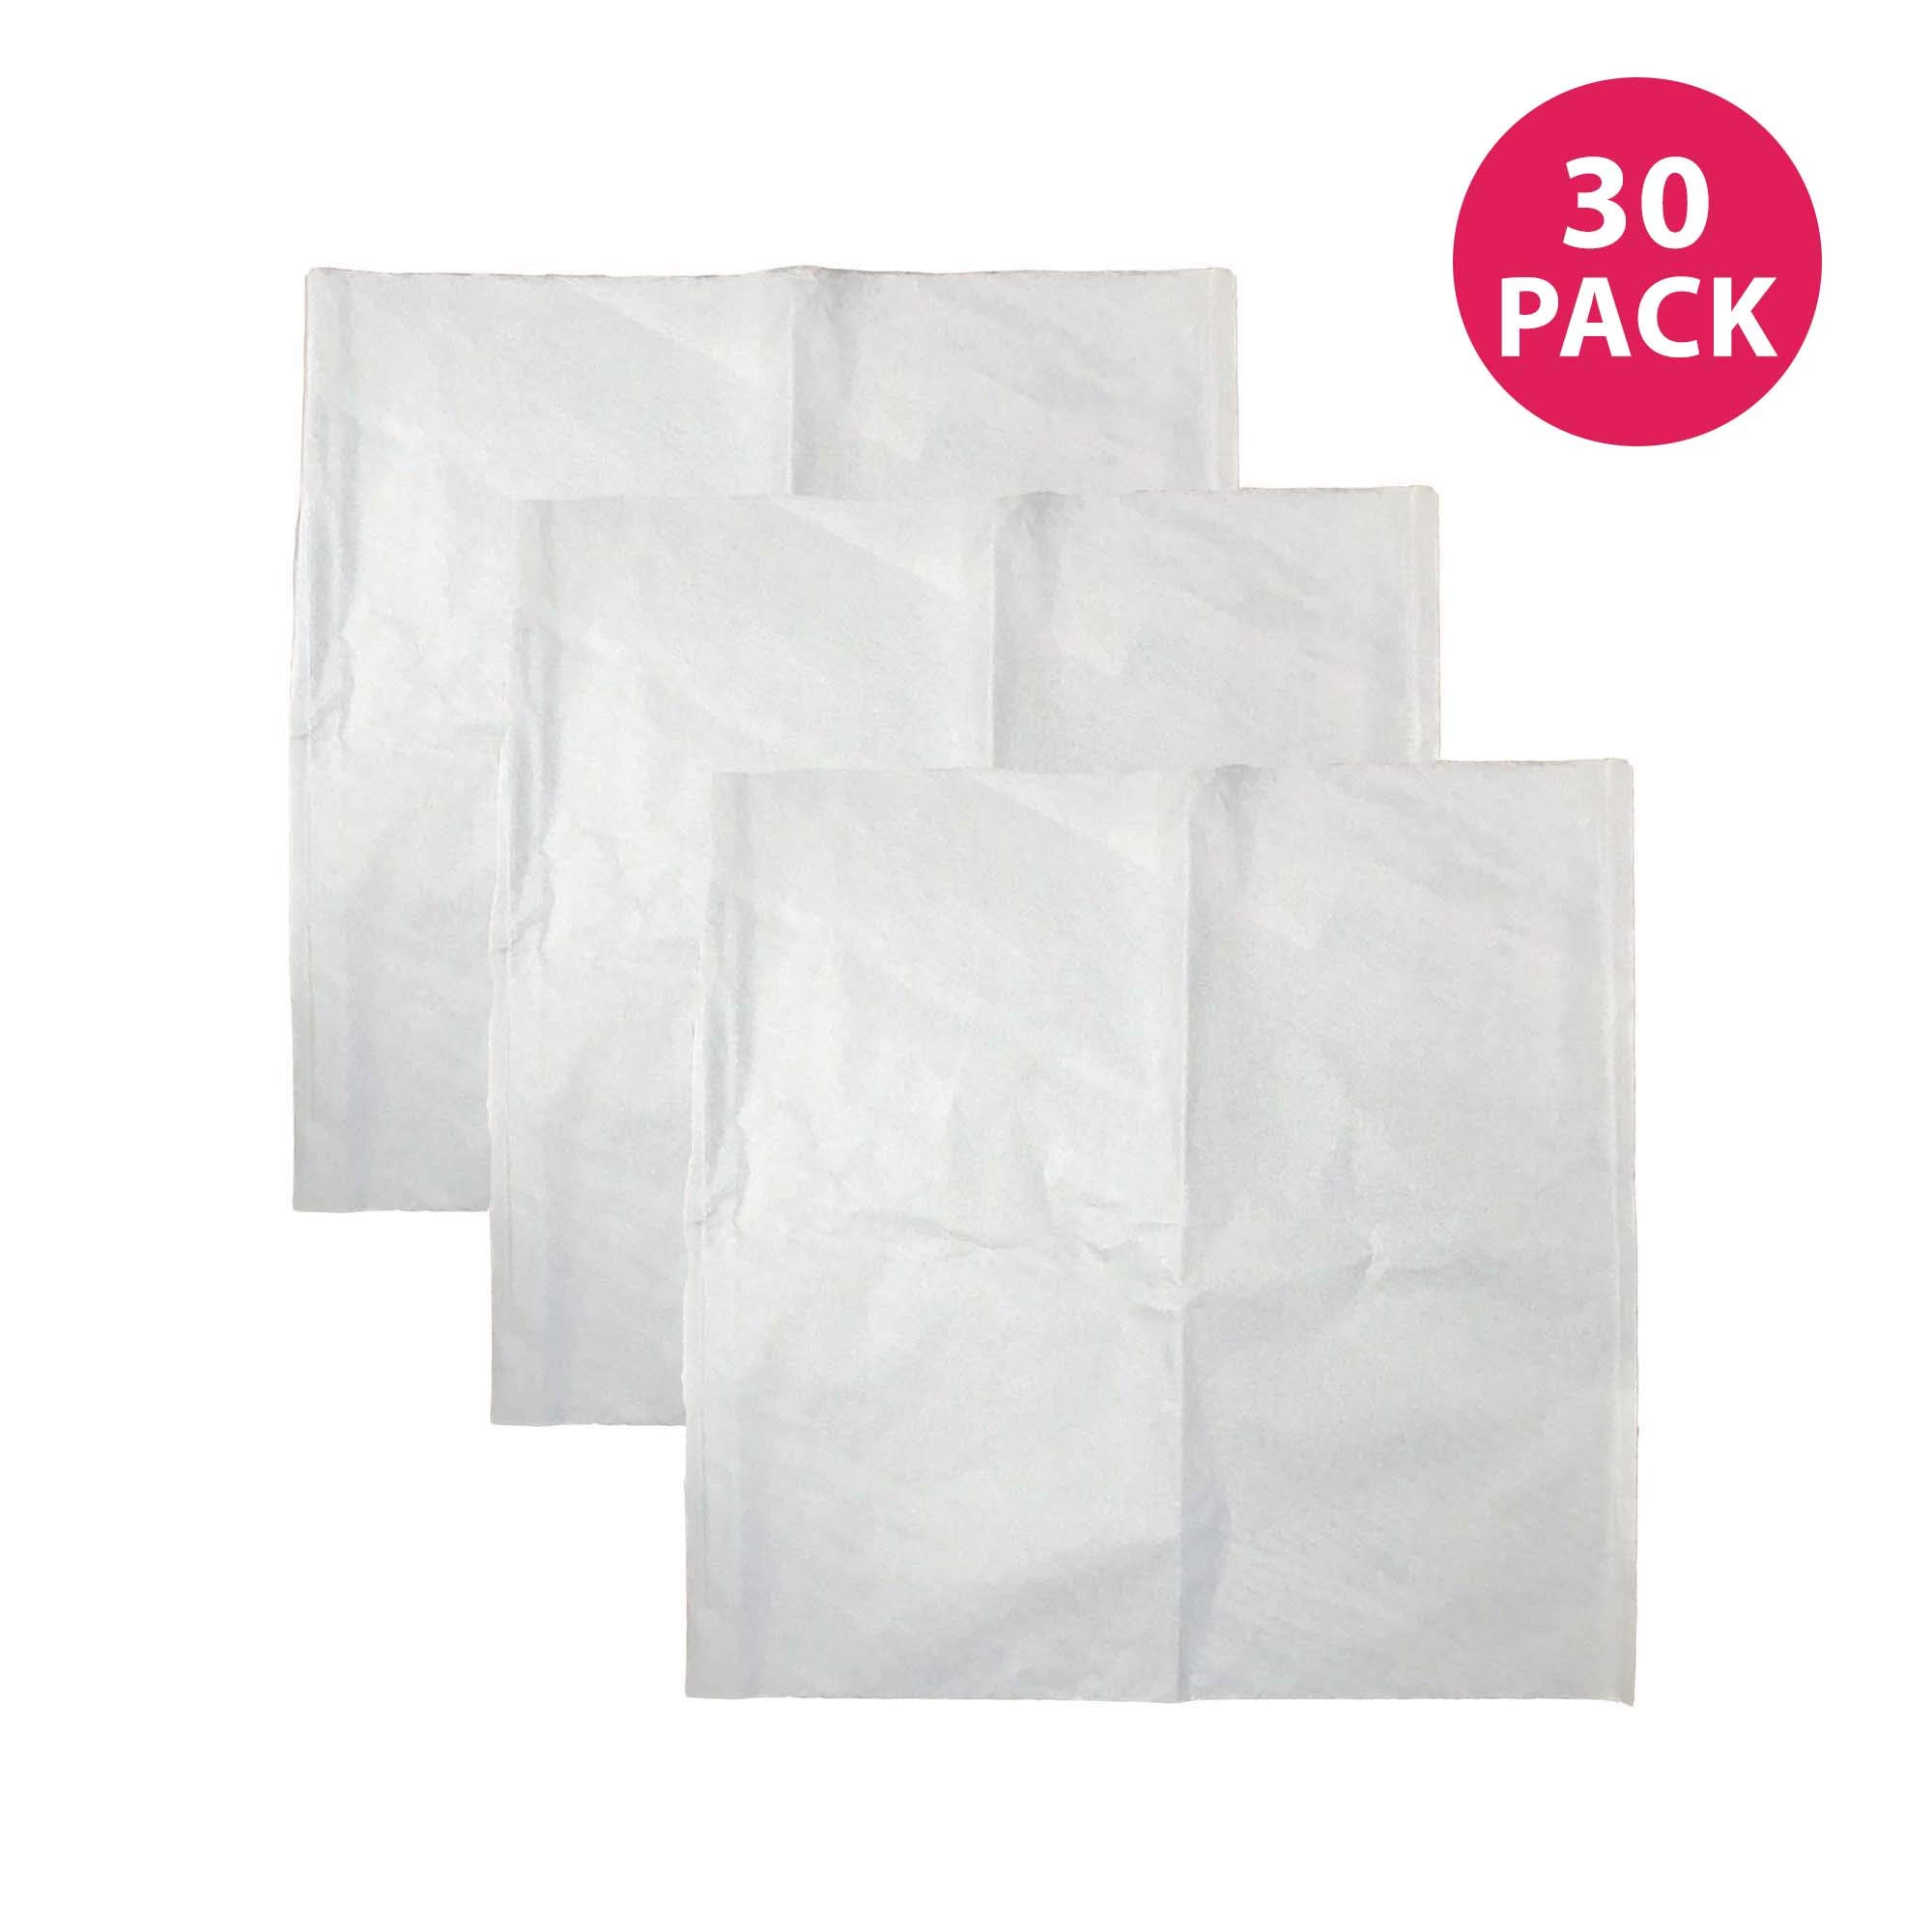 Think Crucial Replacement Coffee Filters Compatible With Toddy Paper Coffee Filter Part - 20.3 x 11.1 x 0.4 - Perfect For Cold Brew System Five (5) Gallon Commercial Cold Brew Brewers (30 Pack) by Think Crucial